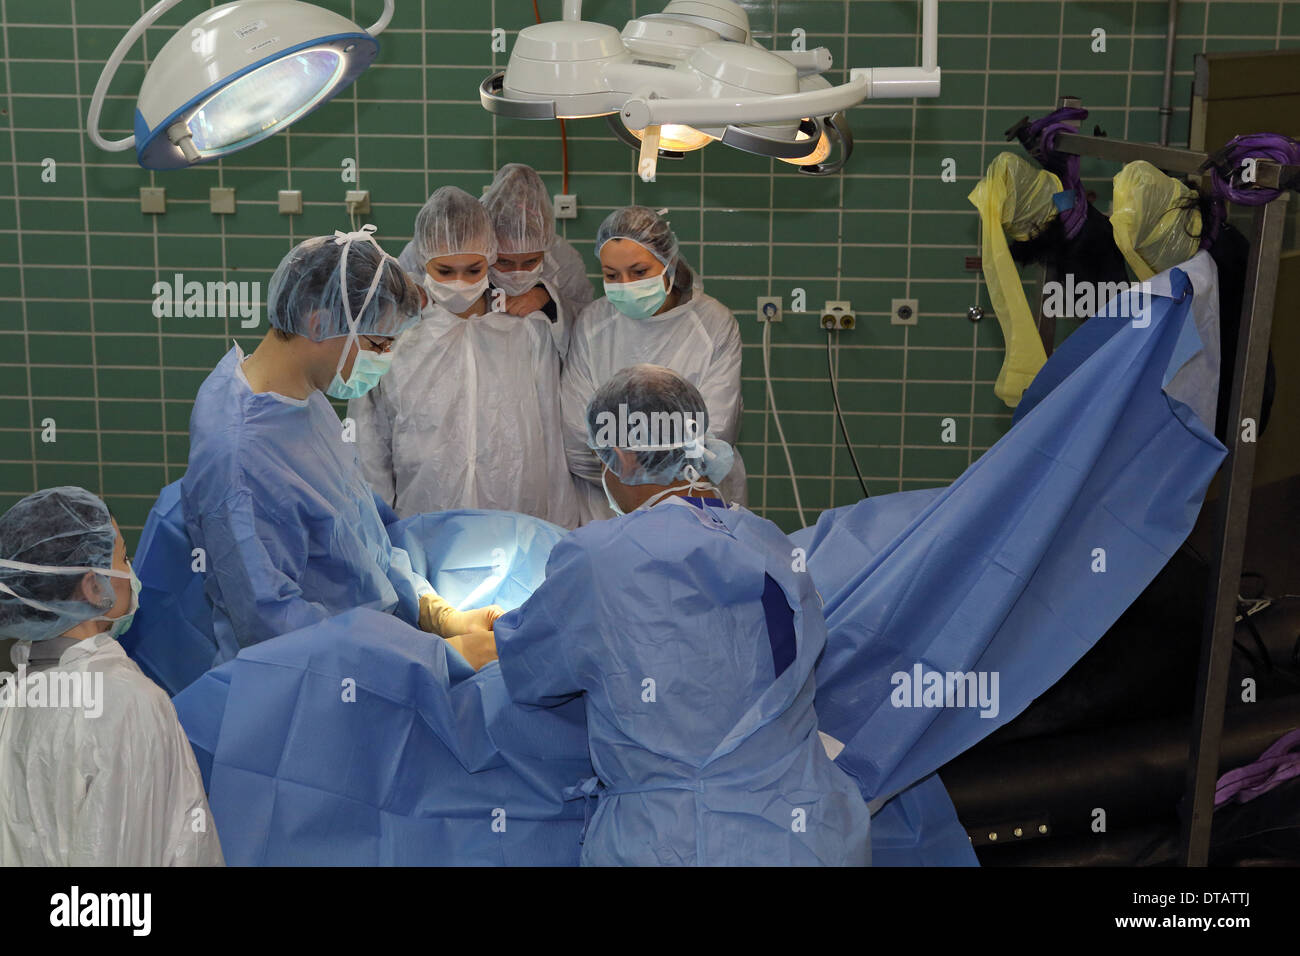 Berlin, Germany, students observe vets in surgery - Stock Image